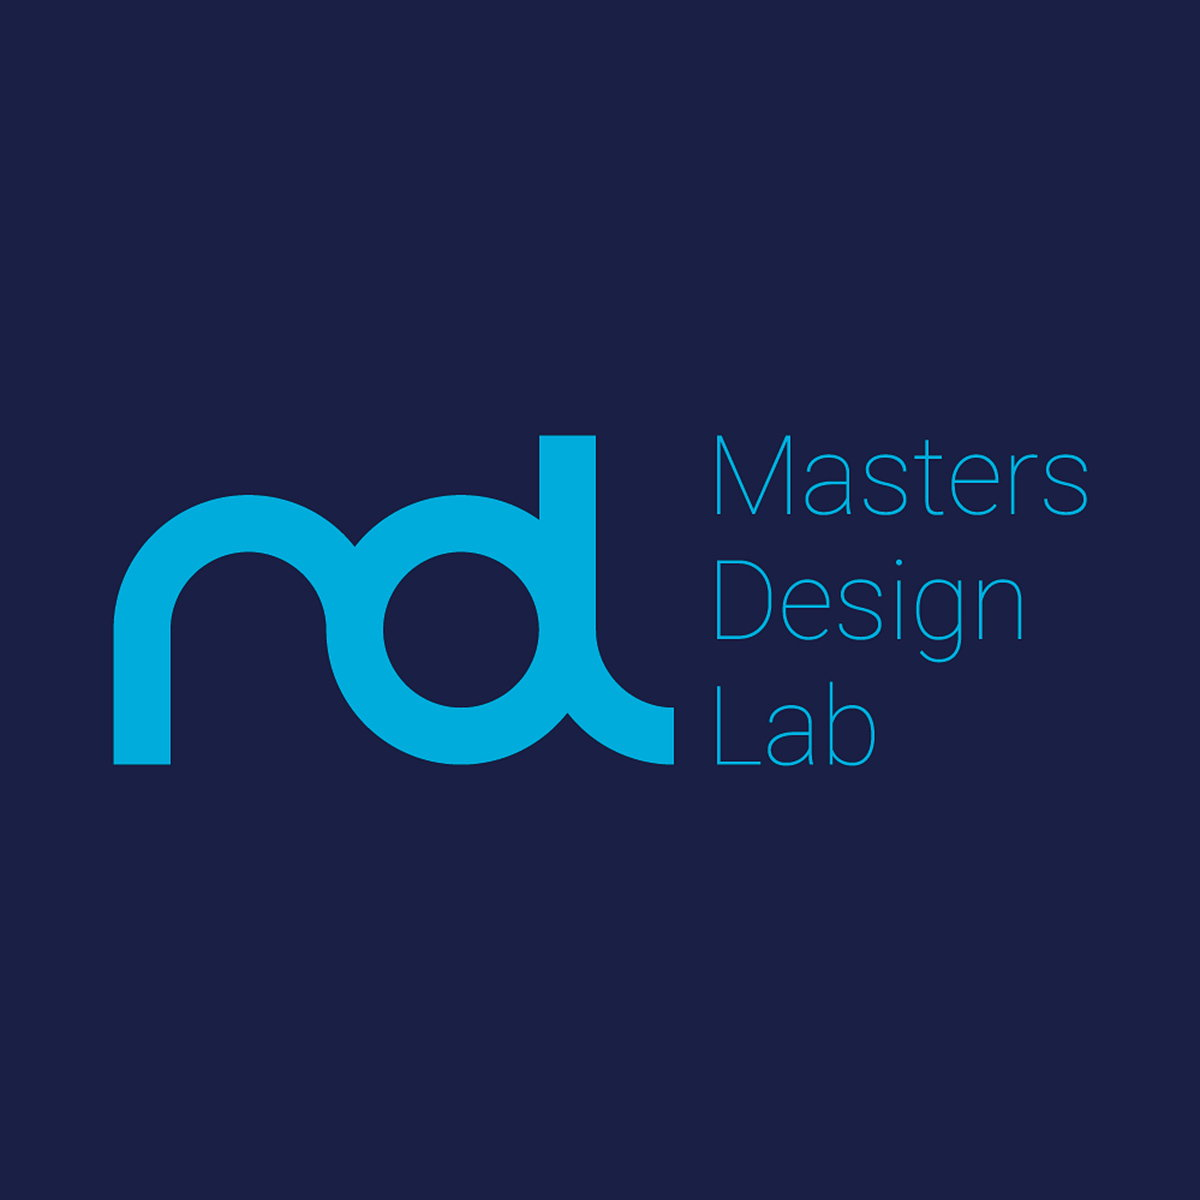 Masters Design Lab Announces Scholarships and Social Impact Design Clinic